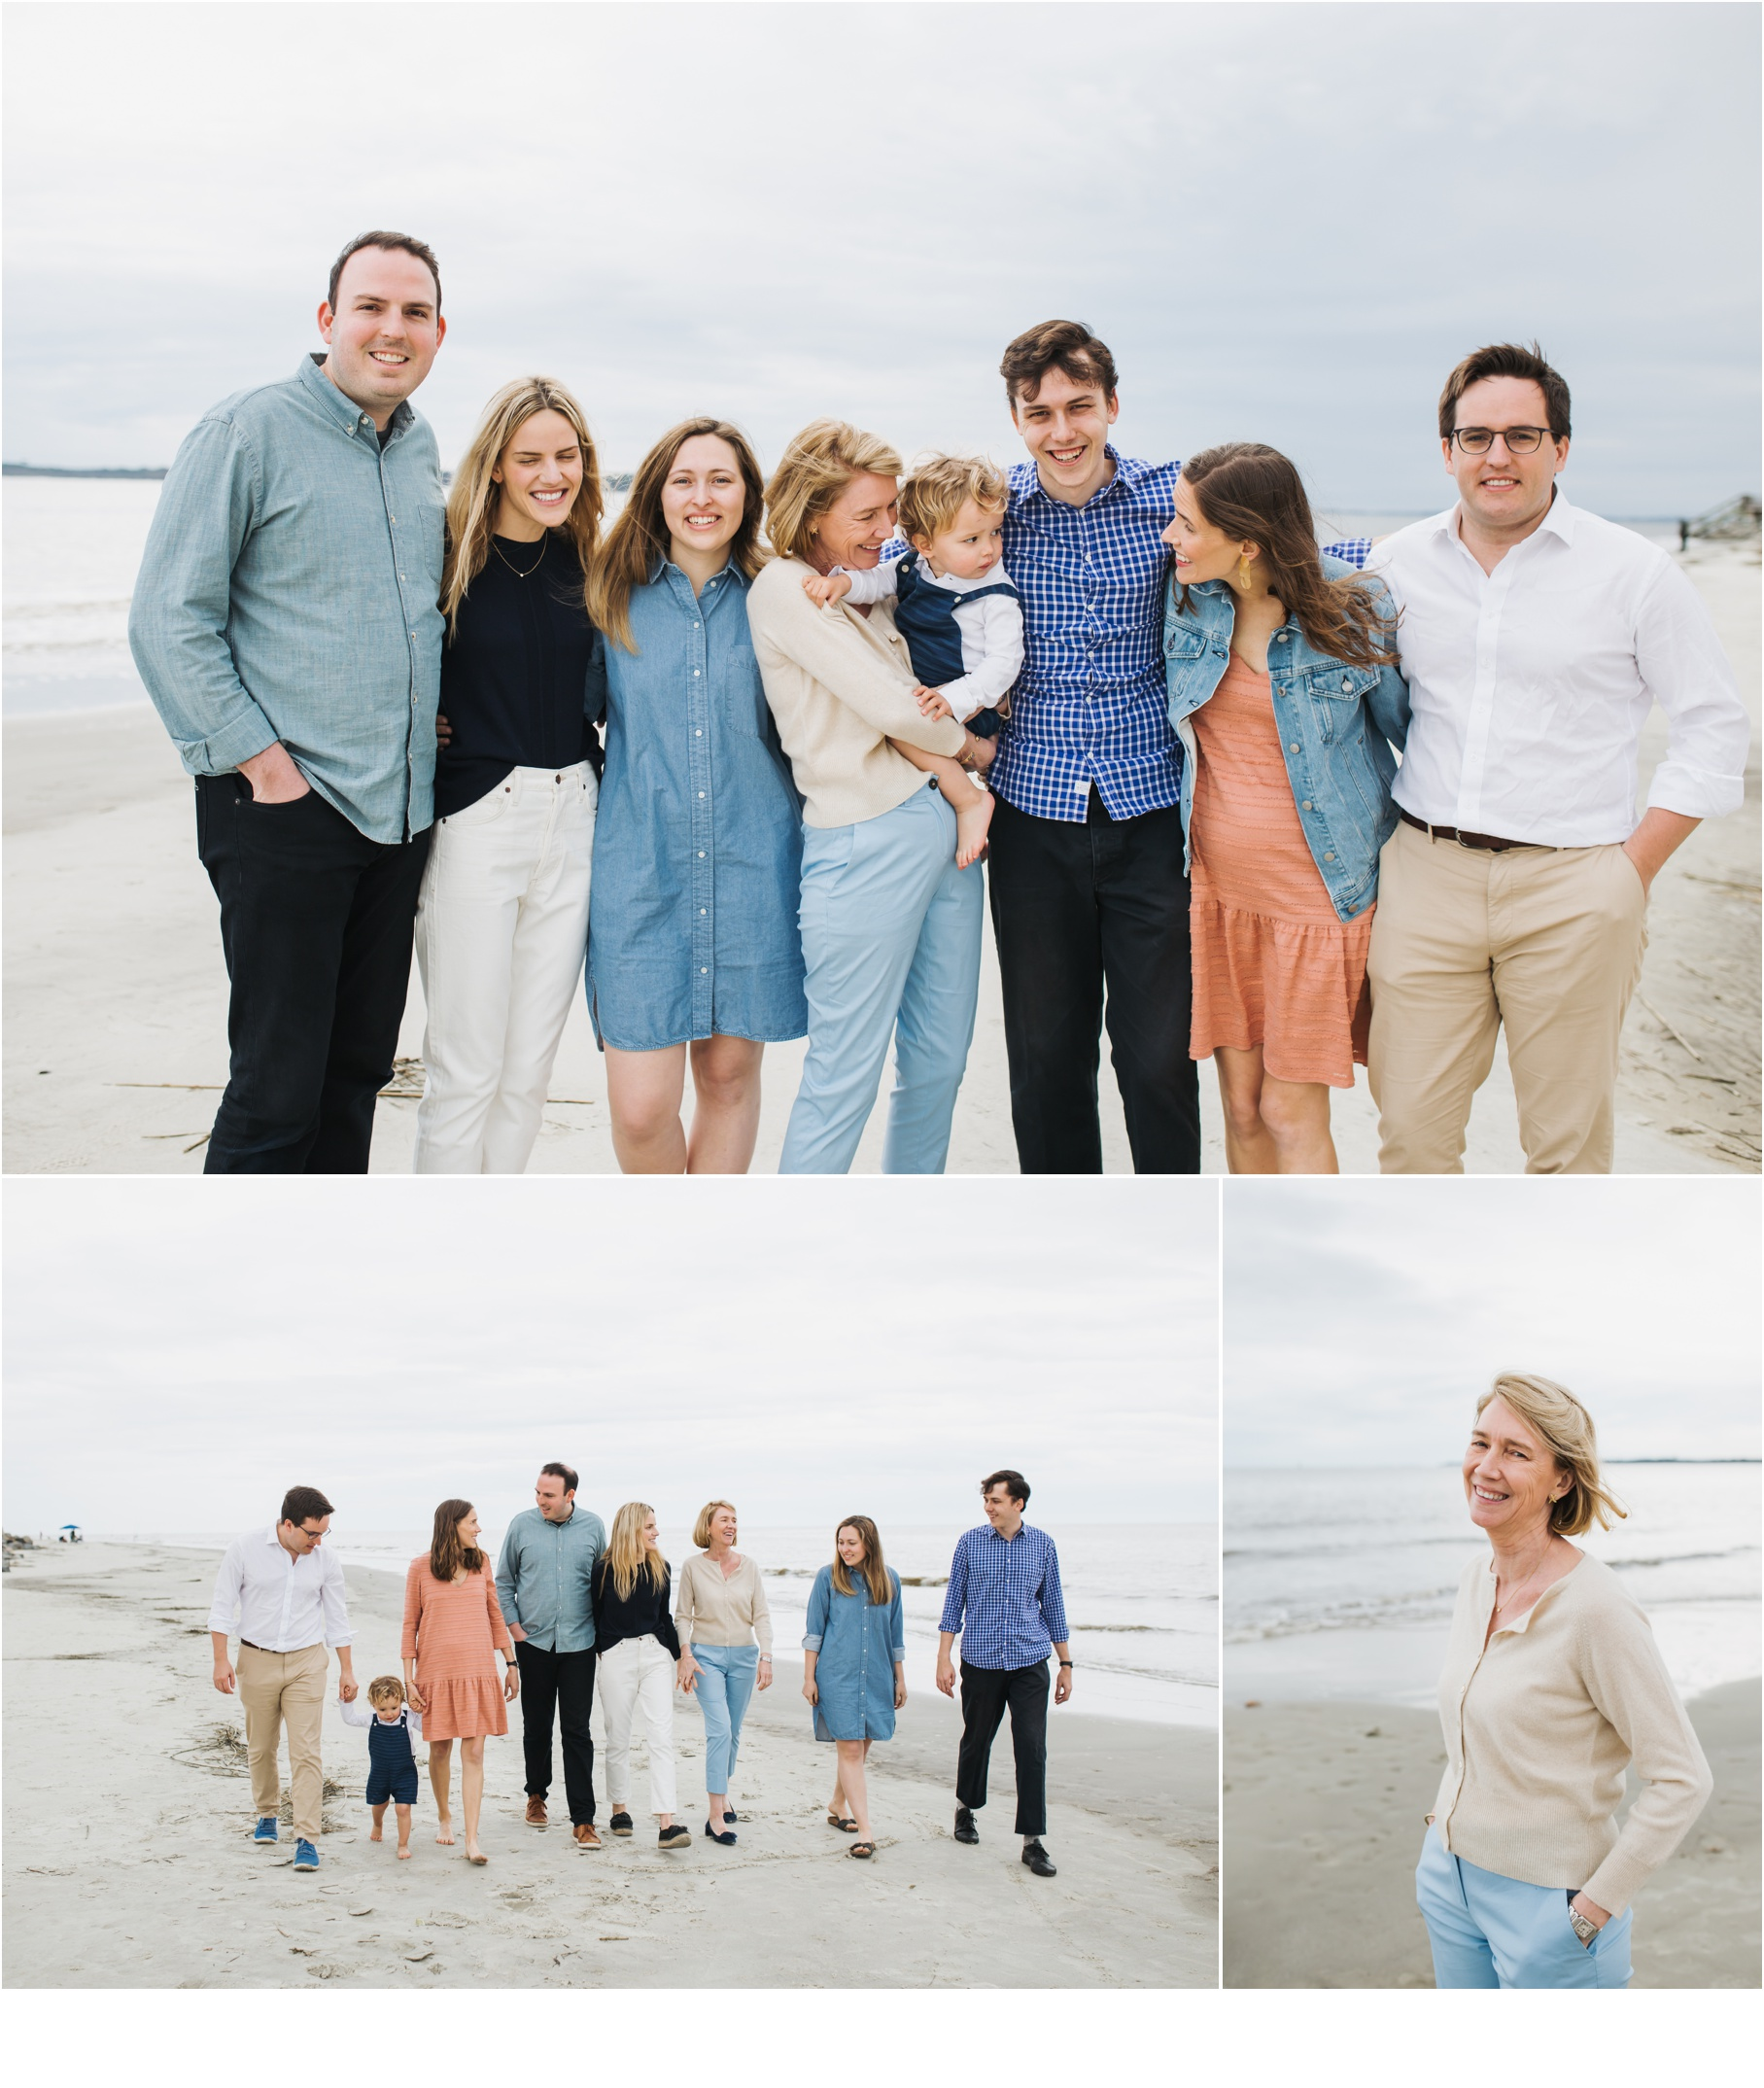 Rainey_Gregg_Photography_St._Simons_Island_Georgia_California_Wedding_Portrait_Photography_1746.jpg